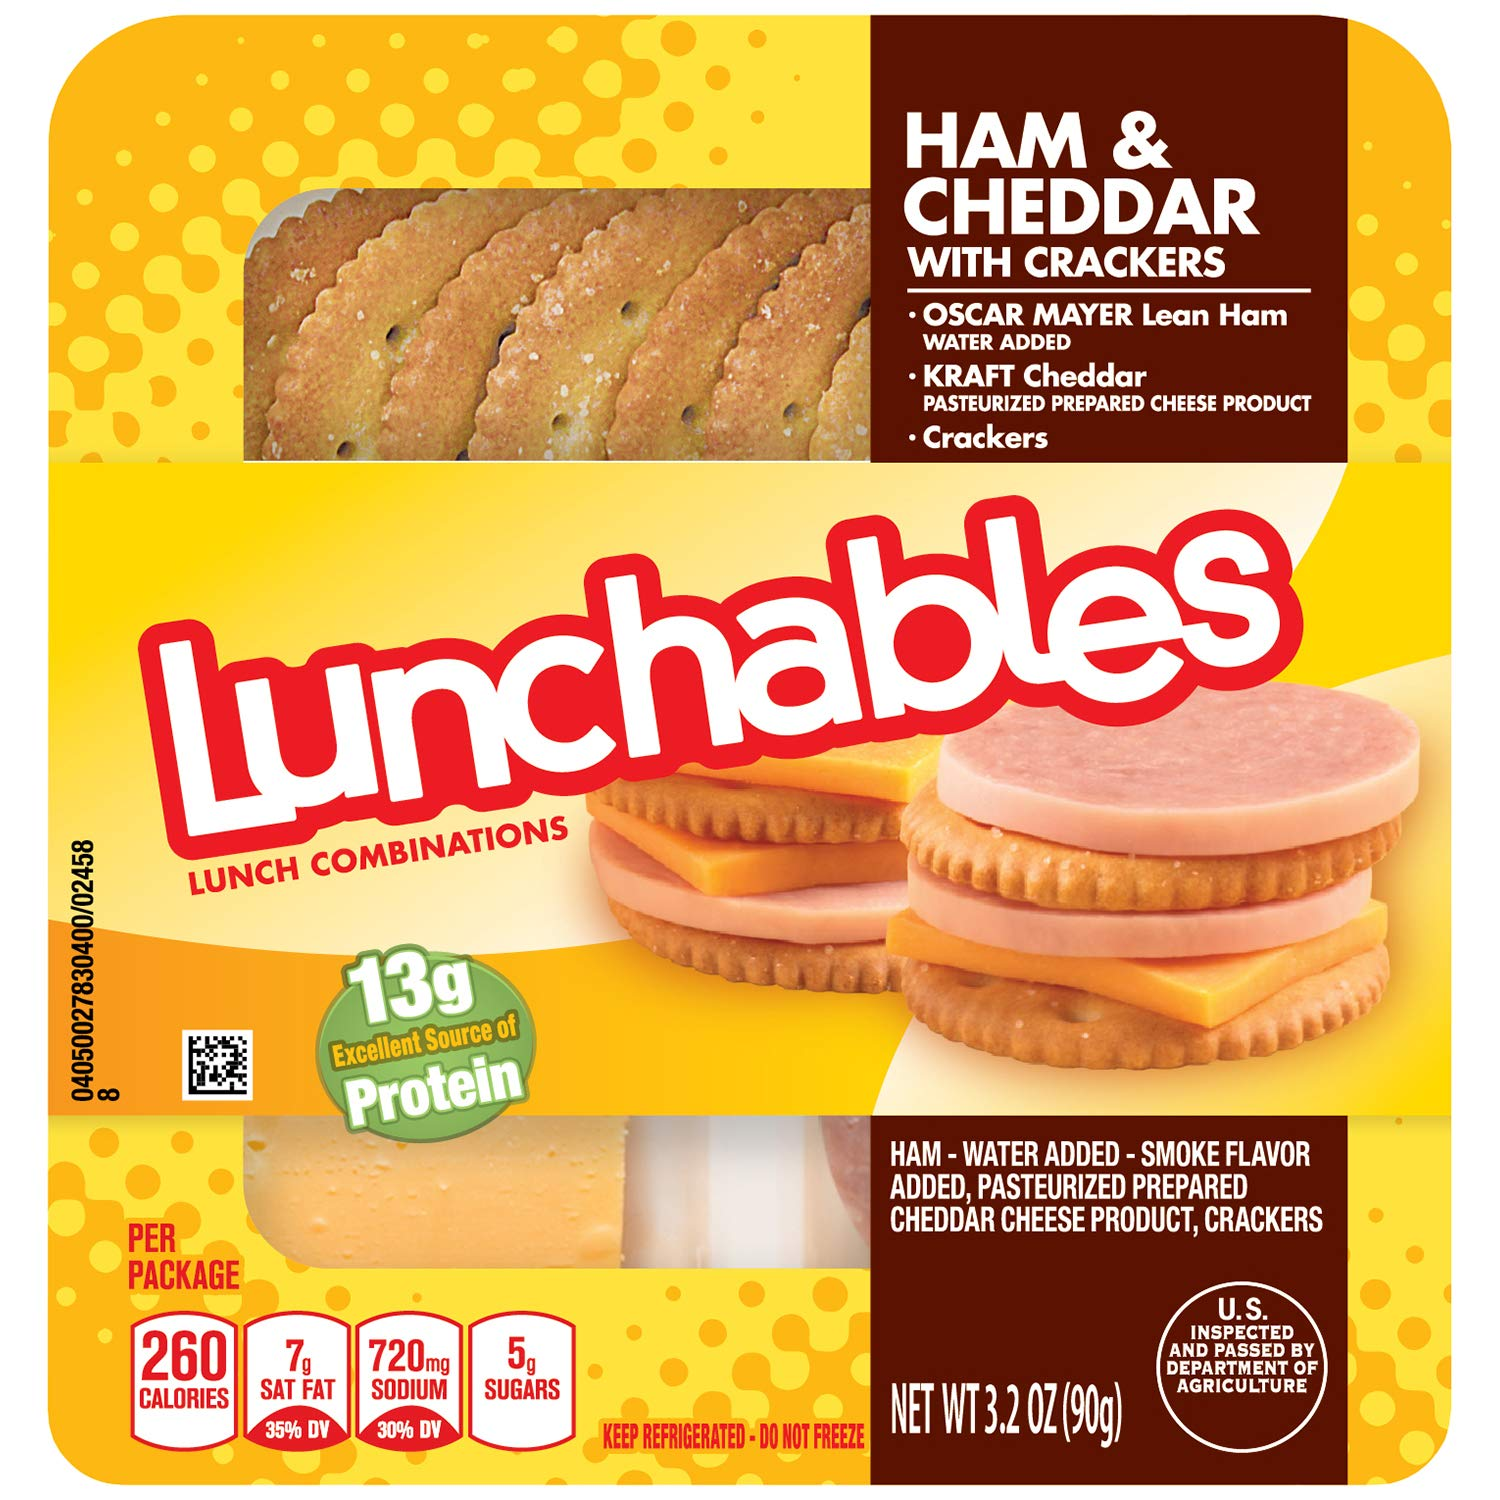 Lunchables-Ham-&-Cheese-Sandwich